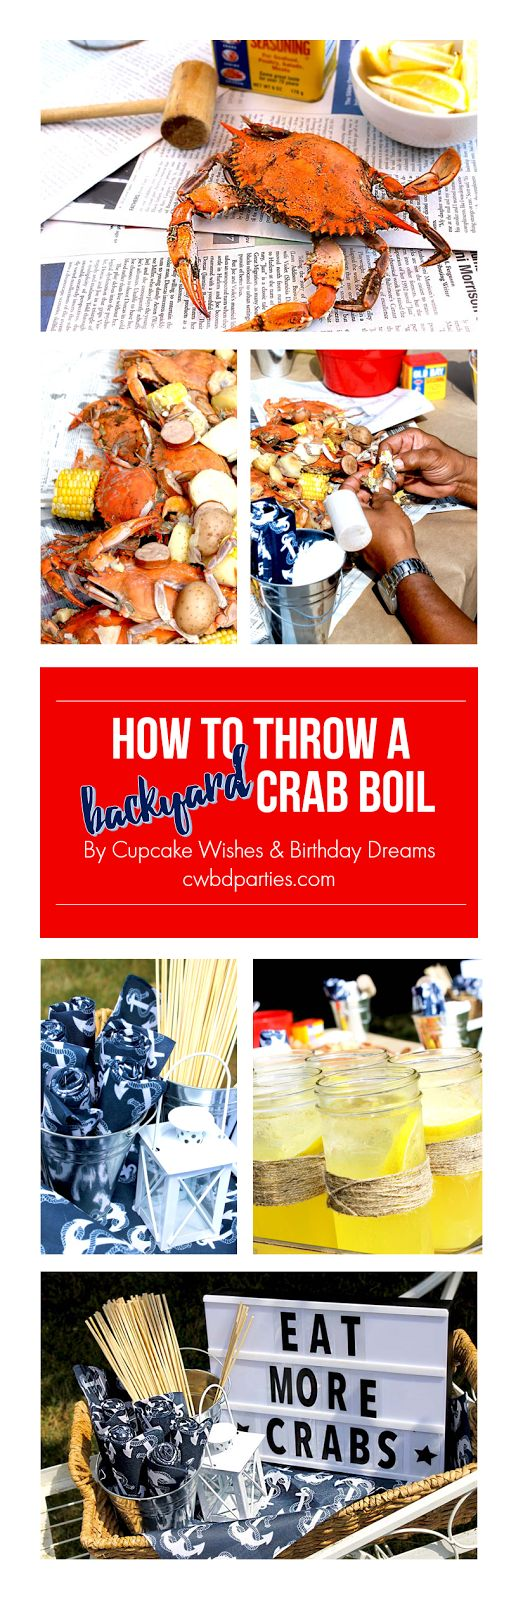 Cupcake Wishes & Birthday Dreams: Host a Backyard Crab Boil Party